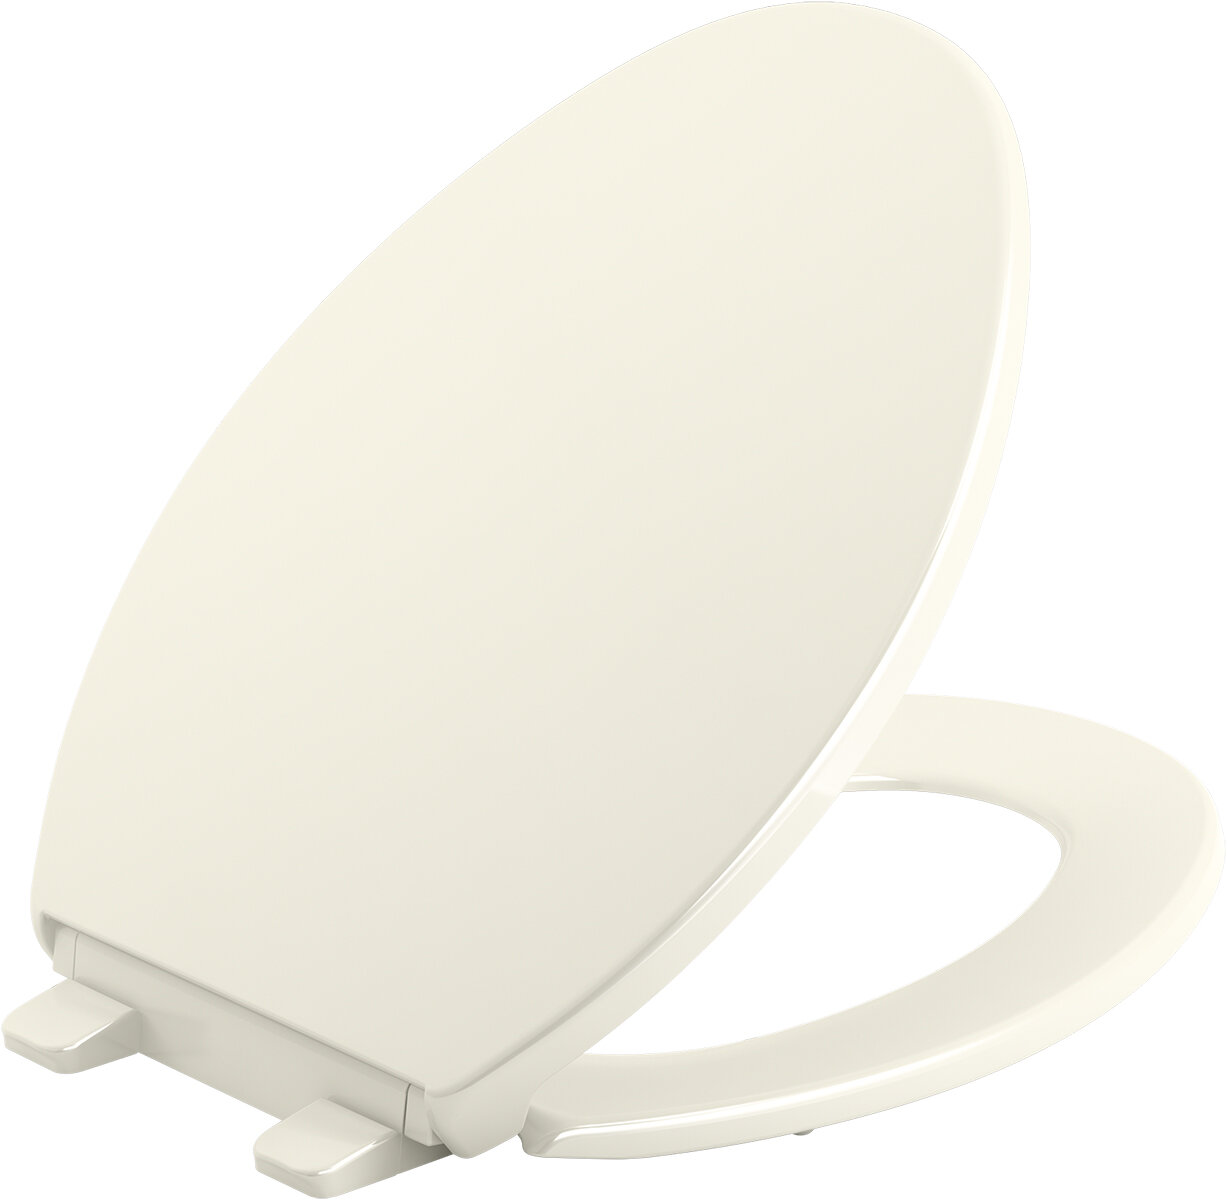 Stupendous Rutledge Front Quiet Close With Grip Tight Bumpers Round Toilet Seat Squirreltailoven Fun Painted Chair Ideas Images Squirreltailovenorg